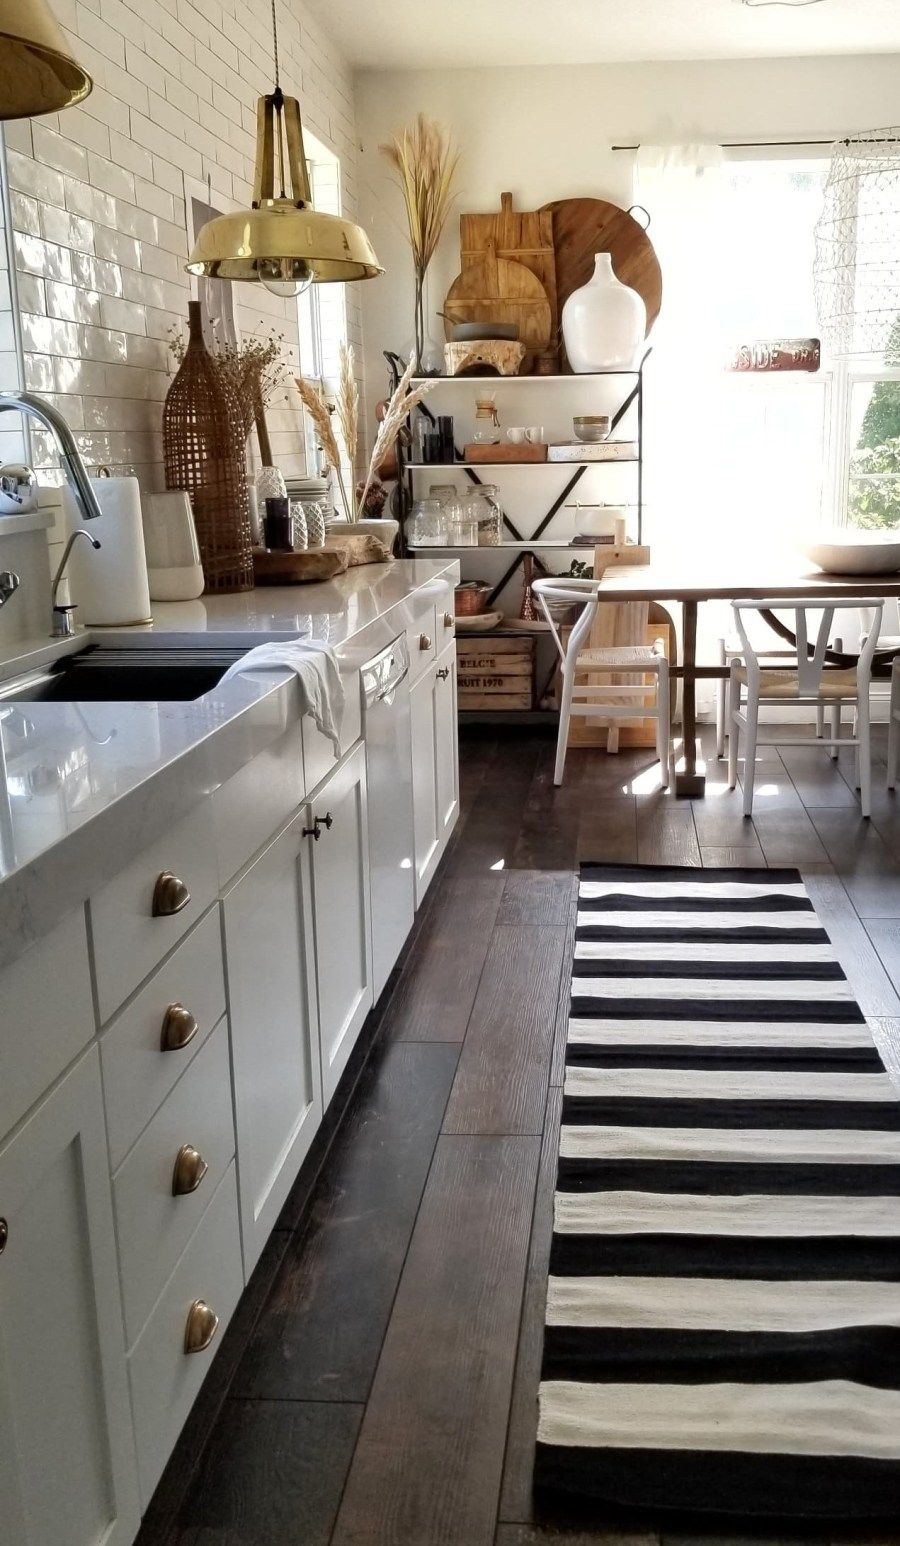 Kitchen And Flooring Renovation Reveal Industrial Vintage Modern And More Bees N Burlap White Modern Kitchen White Kitchen Makeover Kitchen Flooring